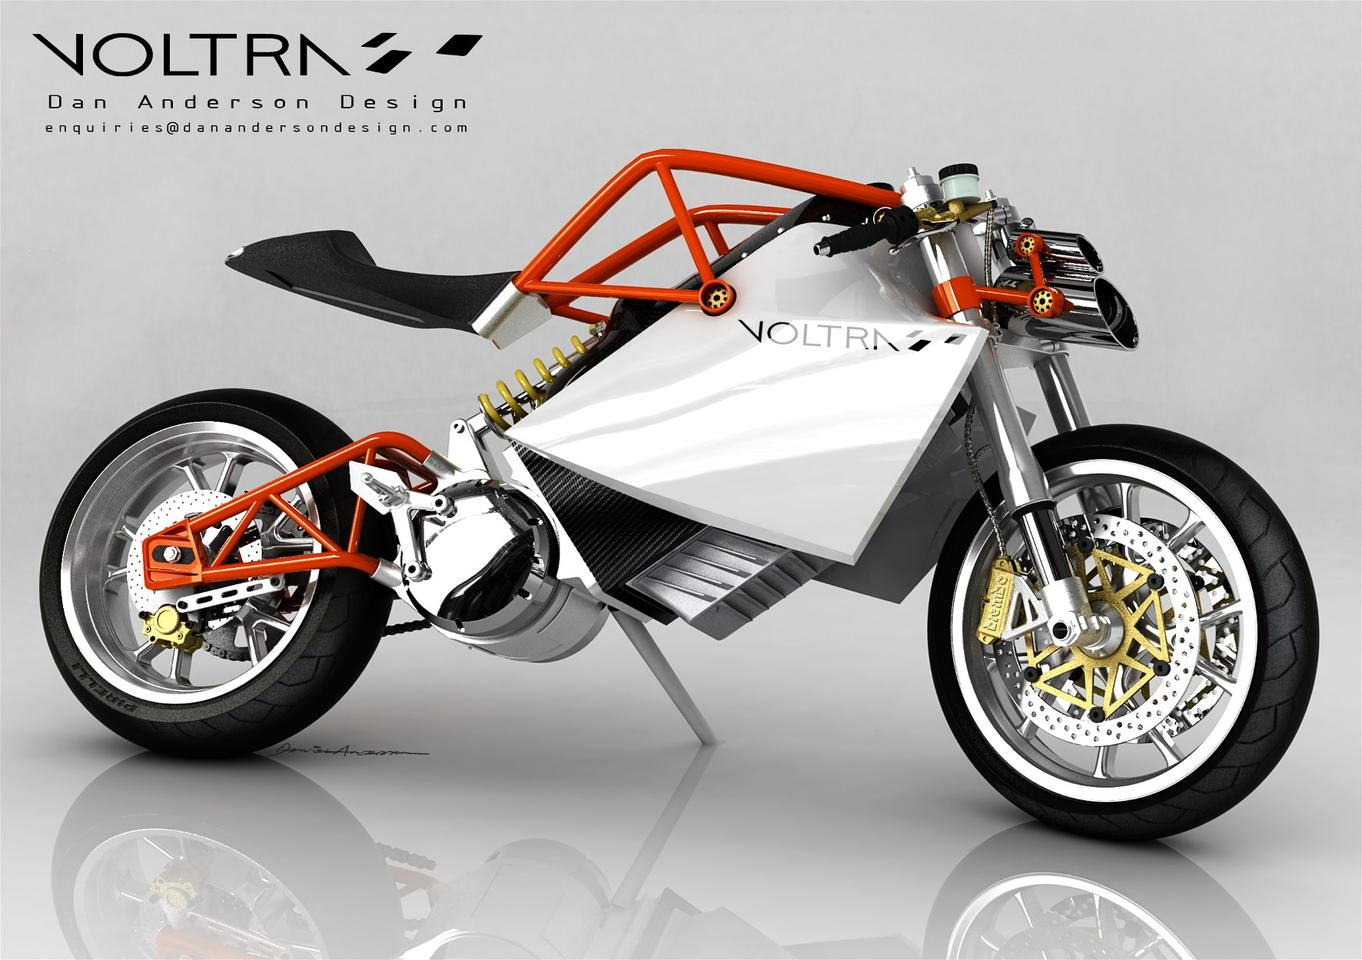 The Voltra electric motorcycle design, by Dan Anderson.